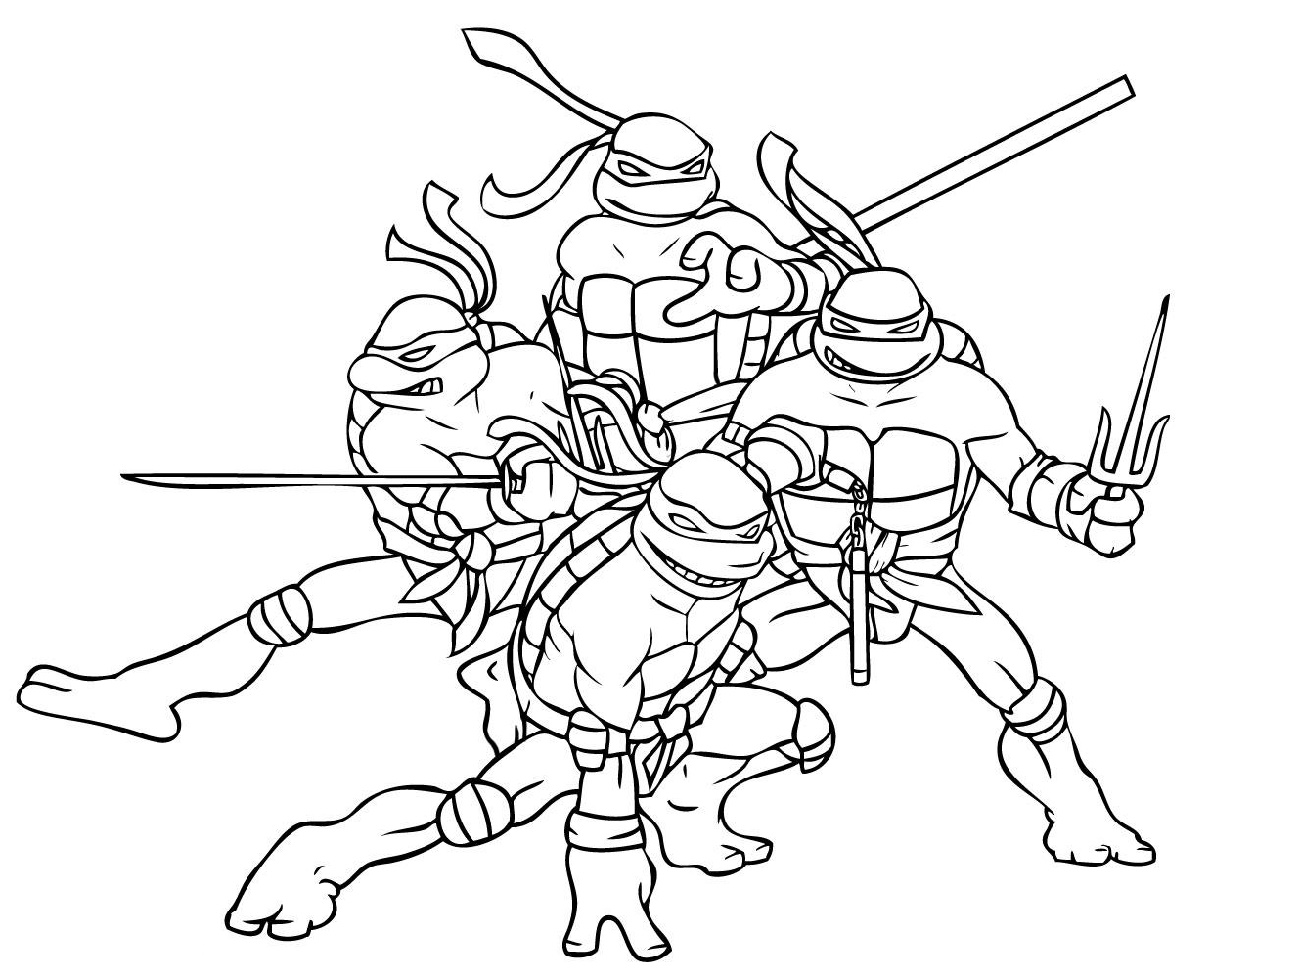 Ninja Turtle Coloring Sheets Nickelodeon